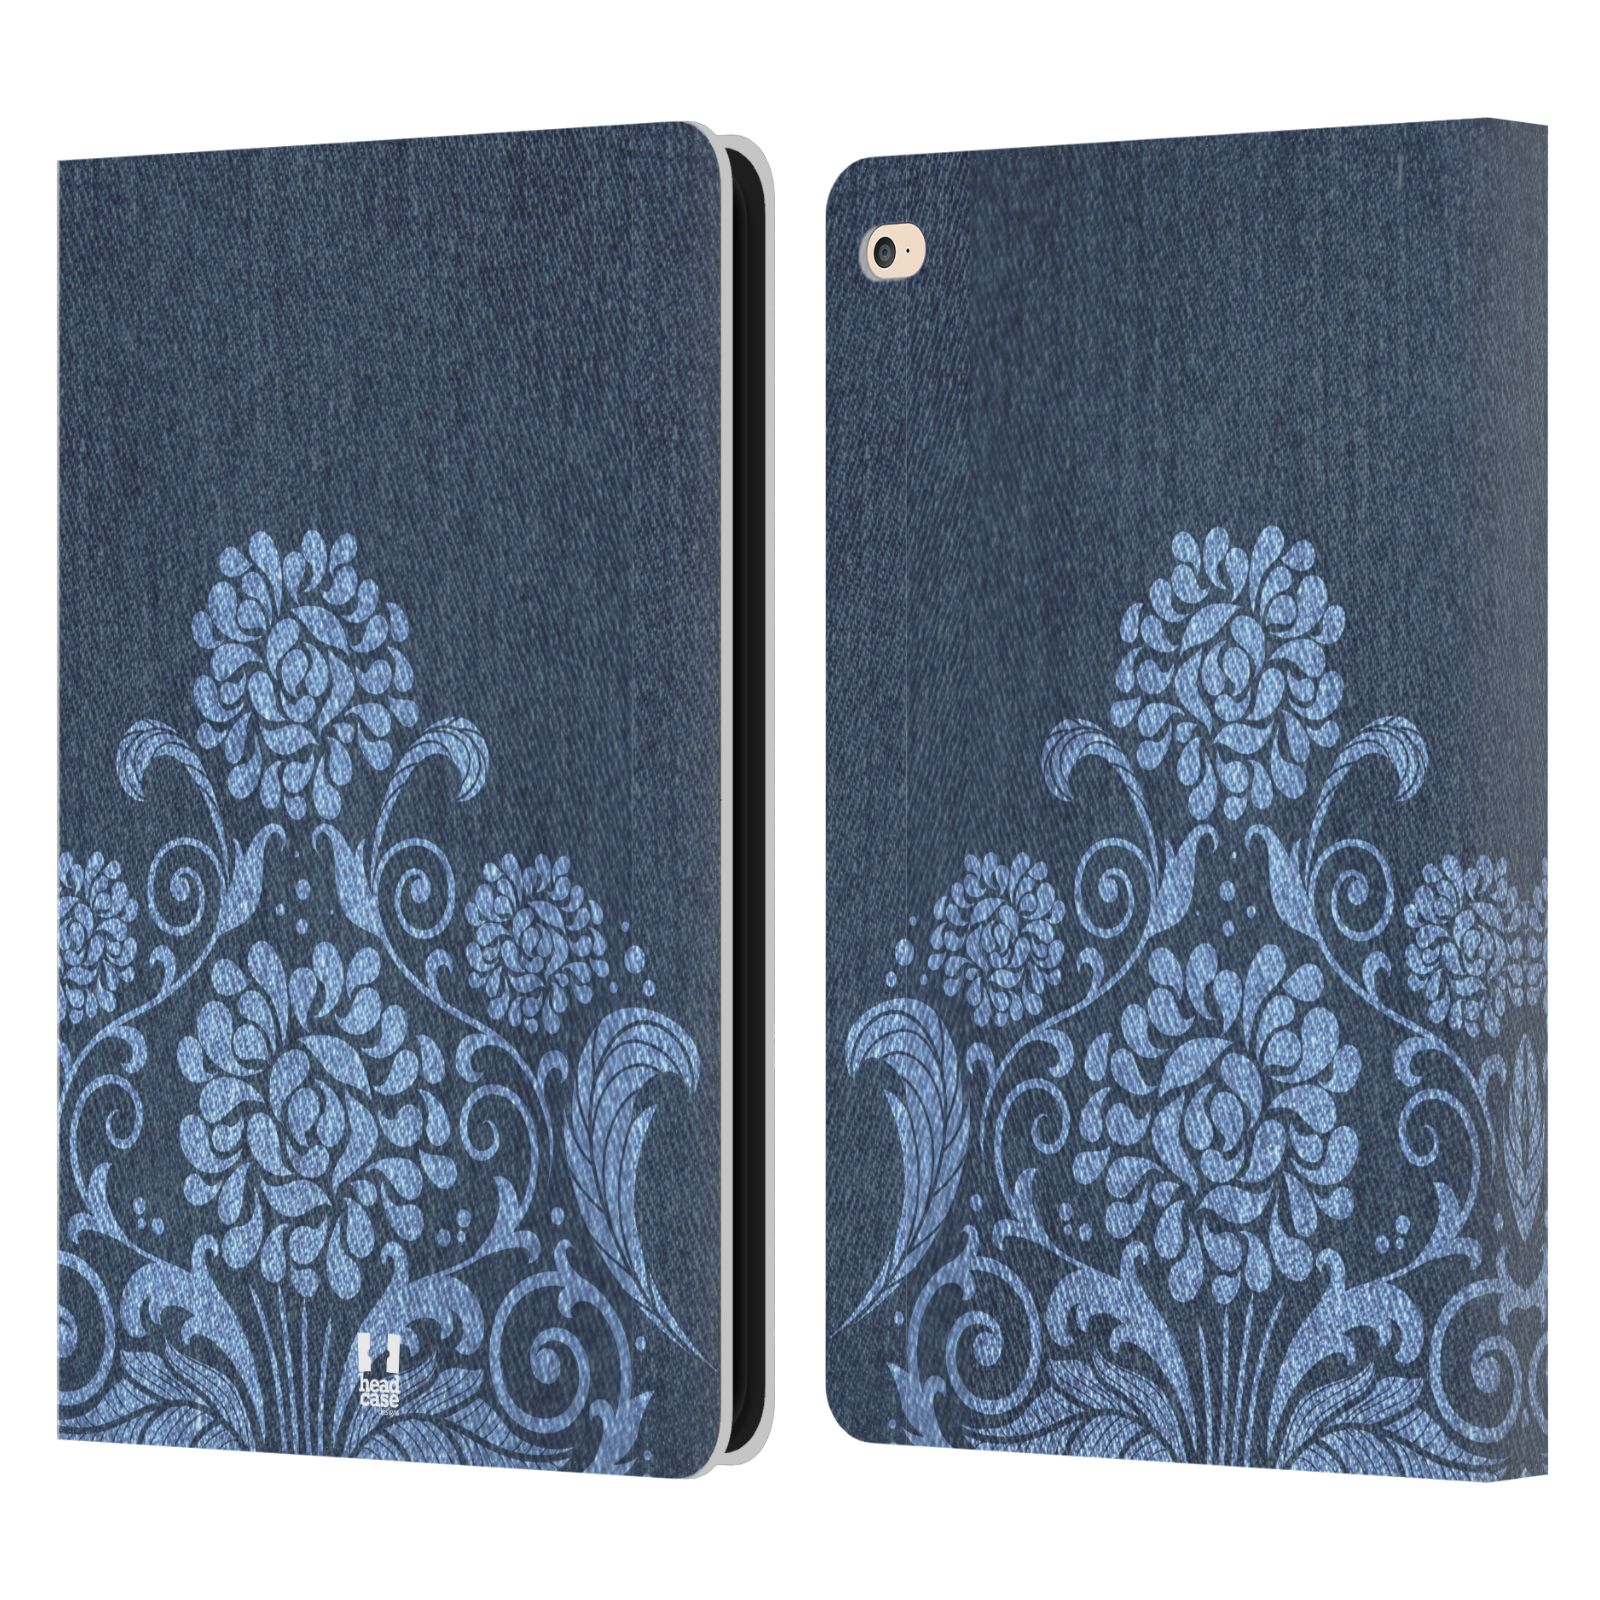 Leather Book Cover Design : Head case designs printed denim leather book wallet